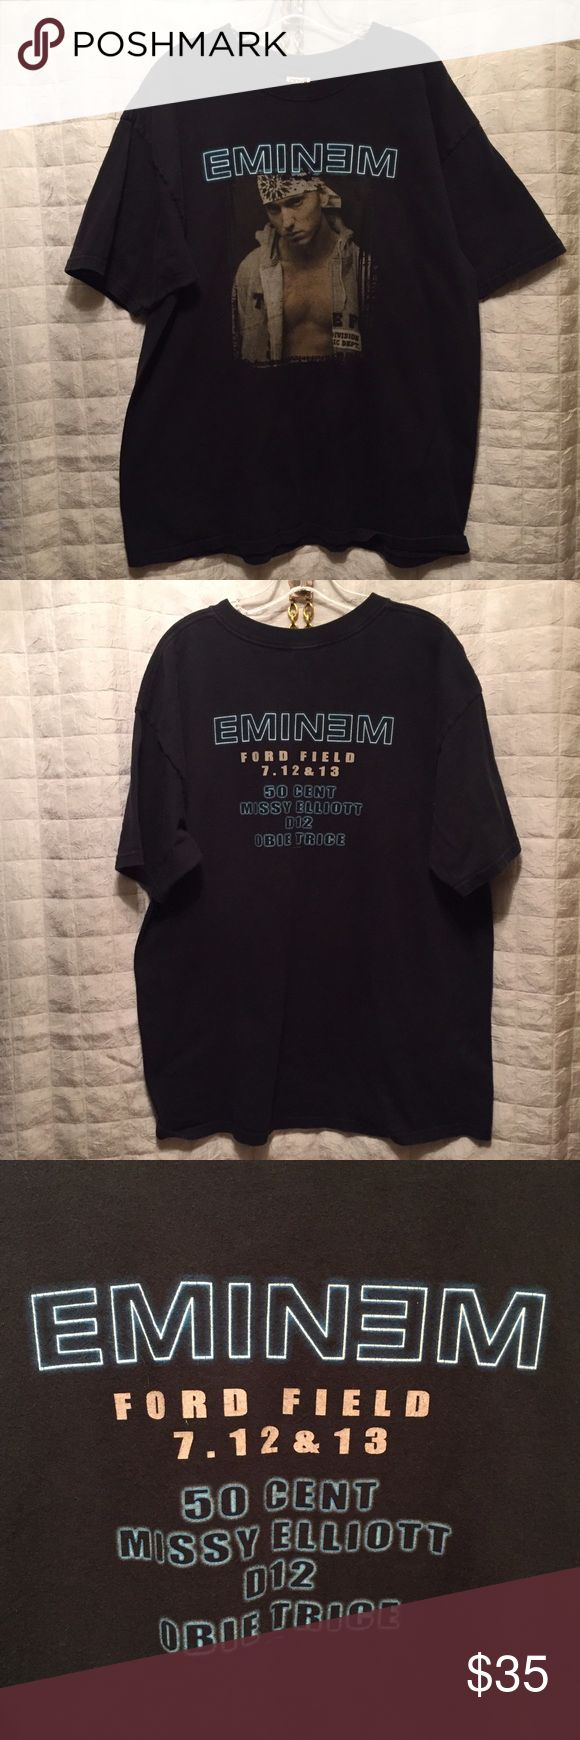 "Eminem 2003 concert shirt missy Elliott 50 cent Awesome retro tee from Eminem's early days. Great condition, light fading, emblems/writing fully intact what a great line up. 100% cotton, 47x29"" Shirts Tees - Short Sleeve"